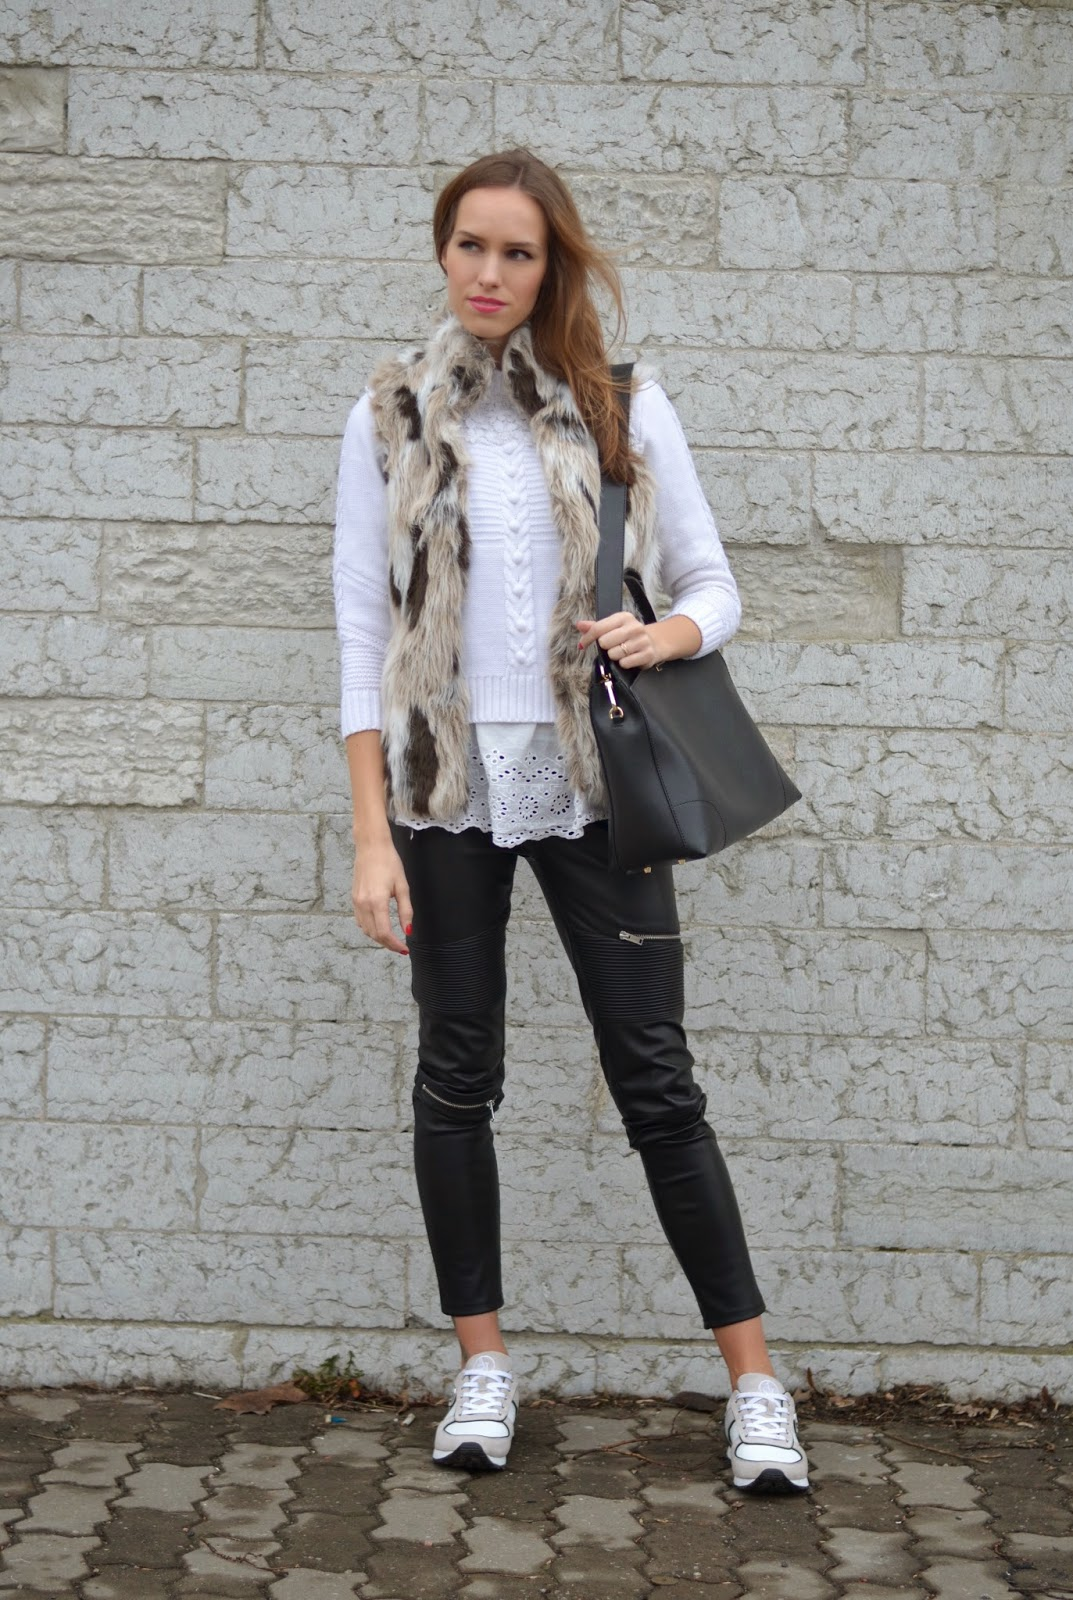 casual-chic-spring-outfit-look-fashion-black-white kristjaana mere